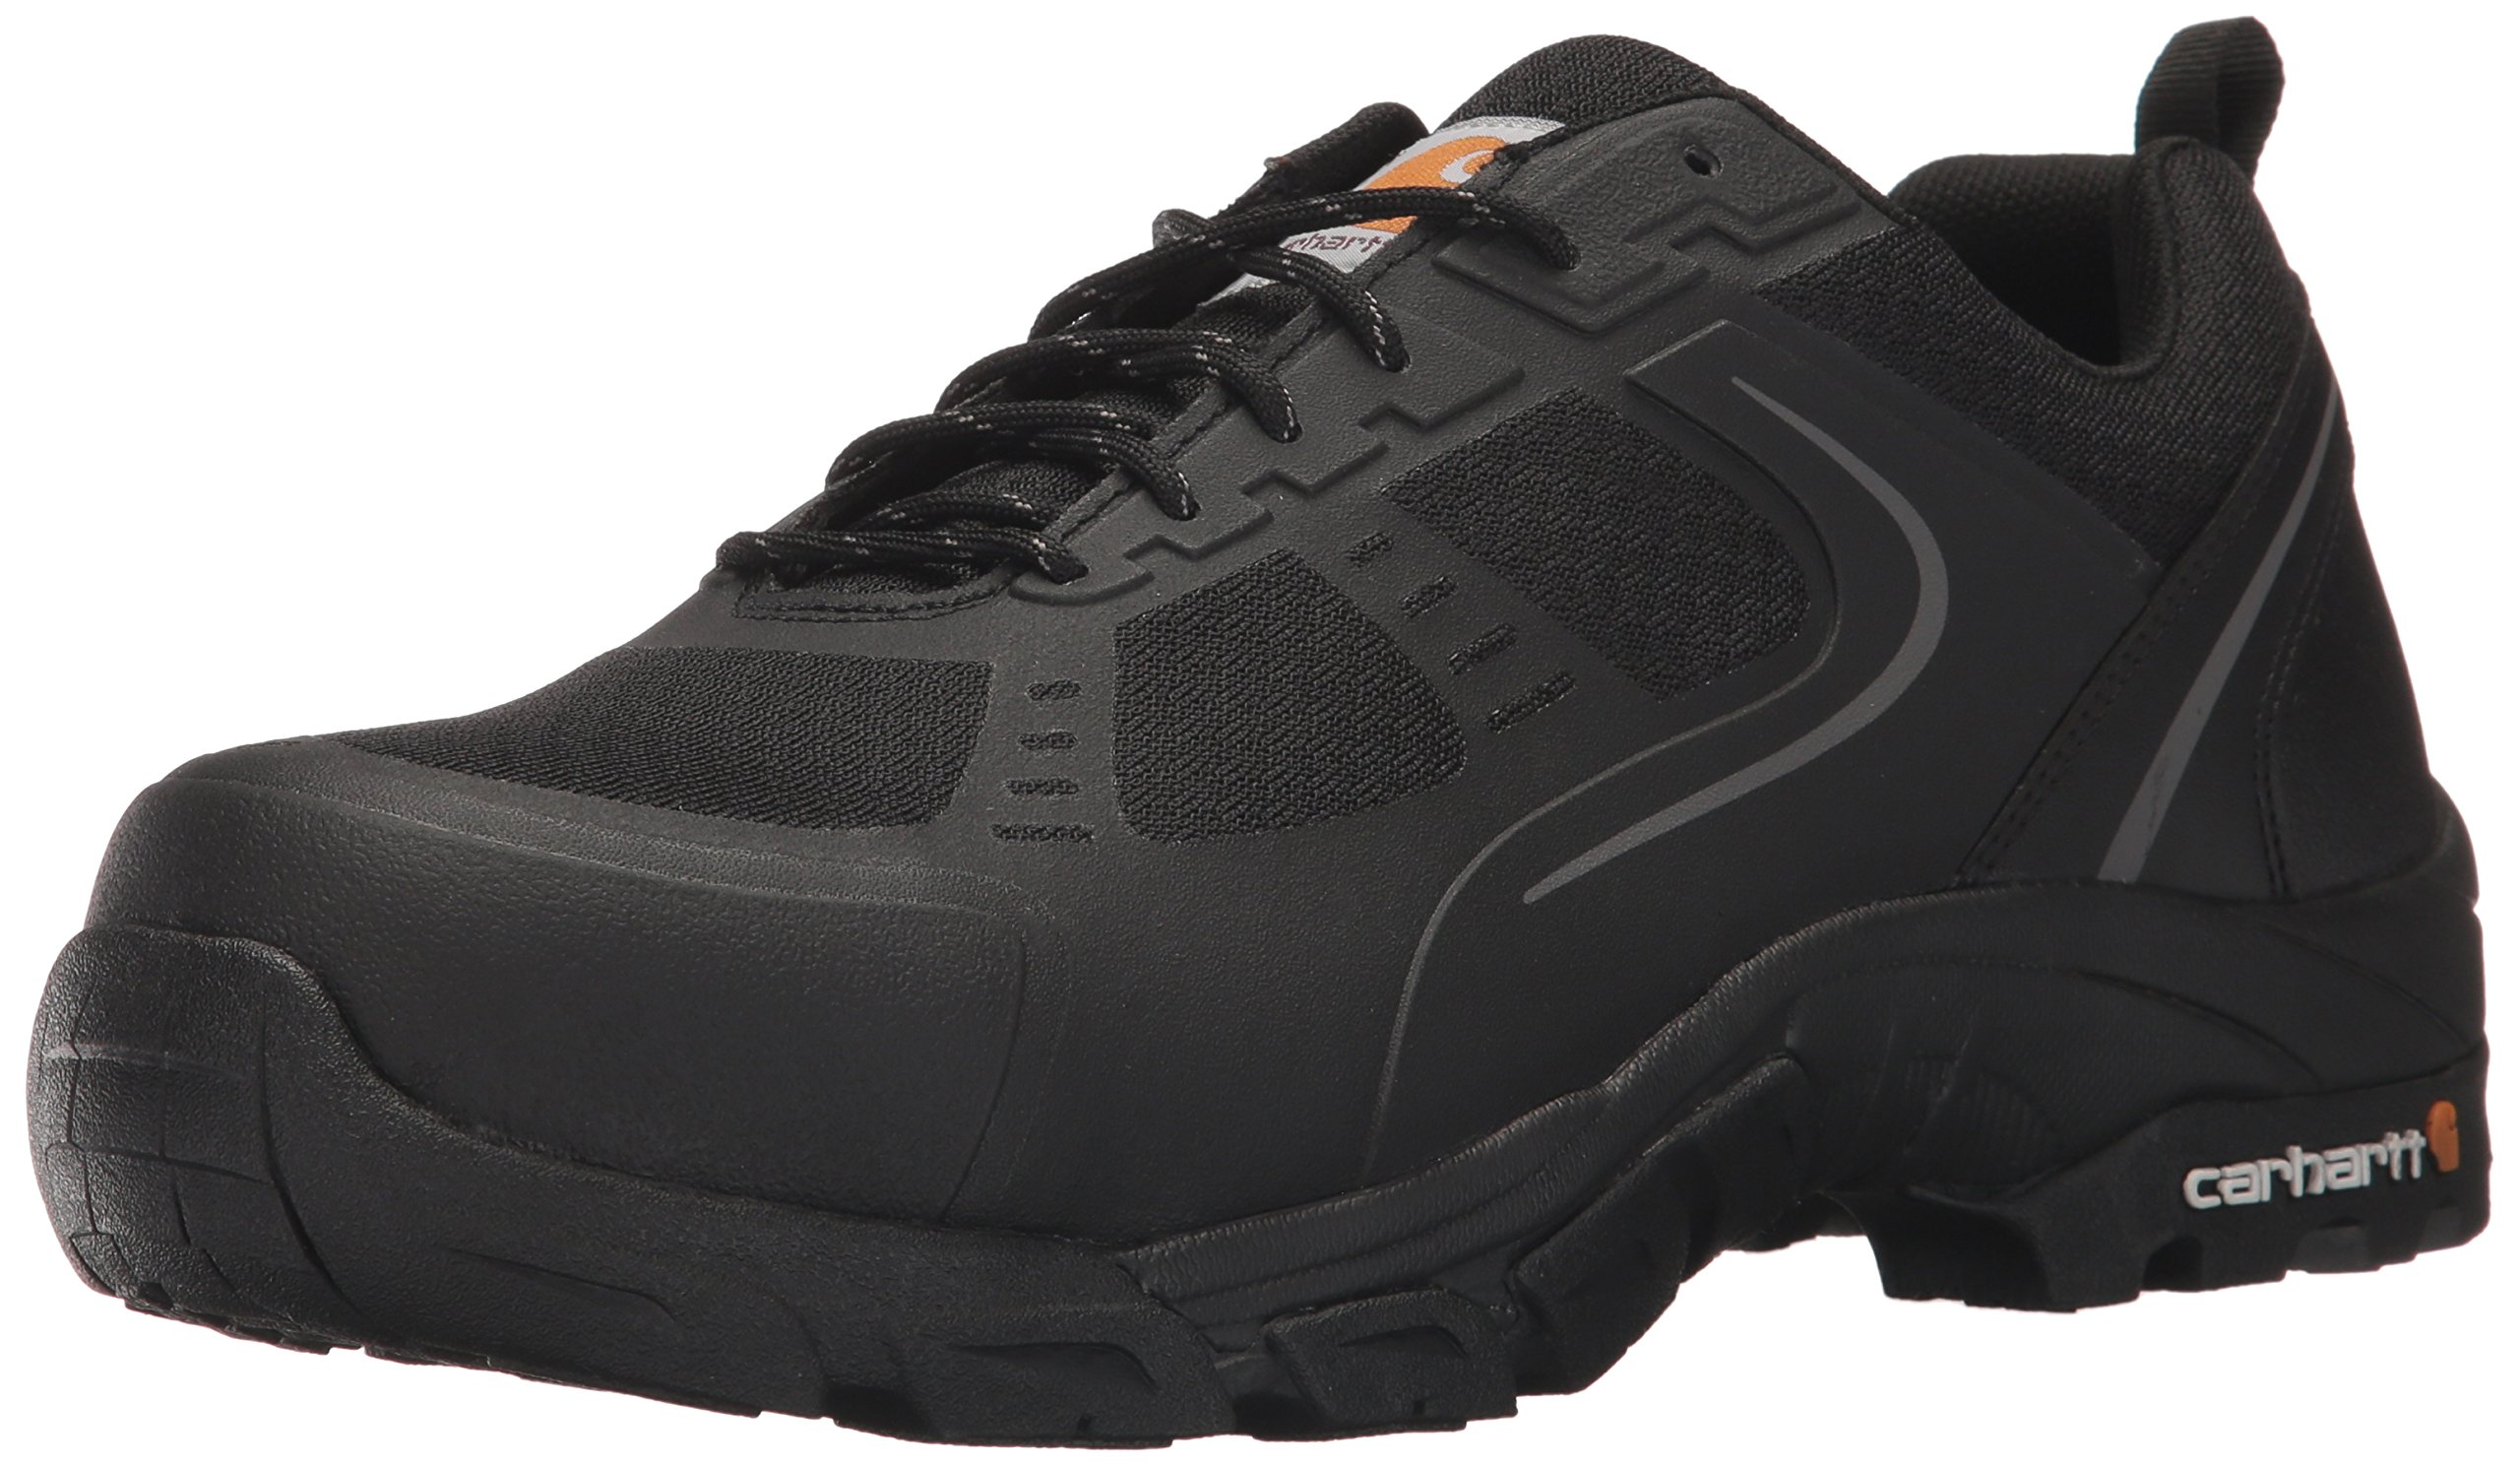 Carhartt Men's Oxford Black Lightweight Hiker SteelToe CMO3251 Industrial Boot